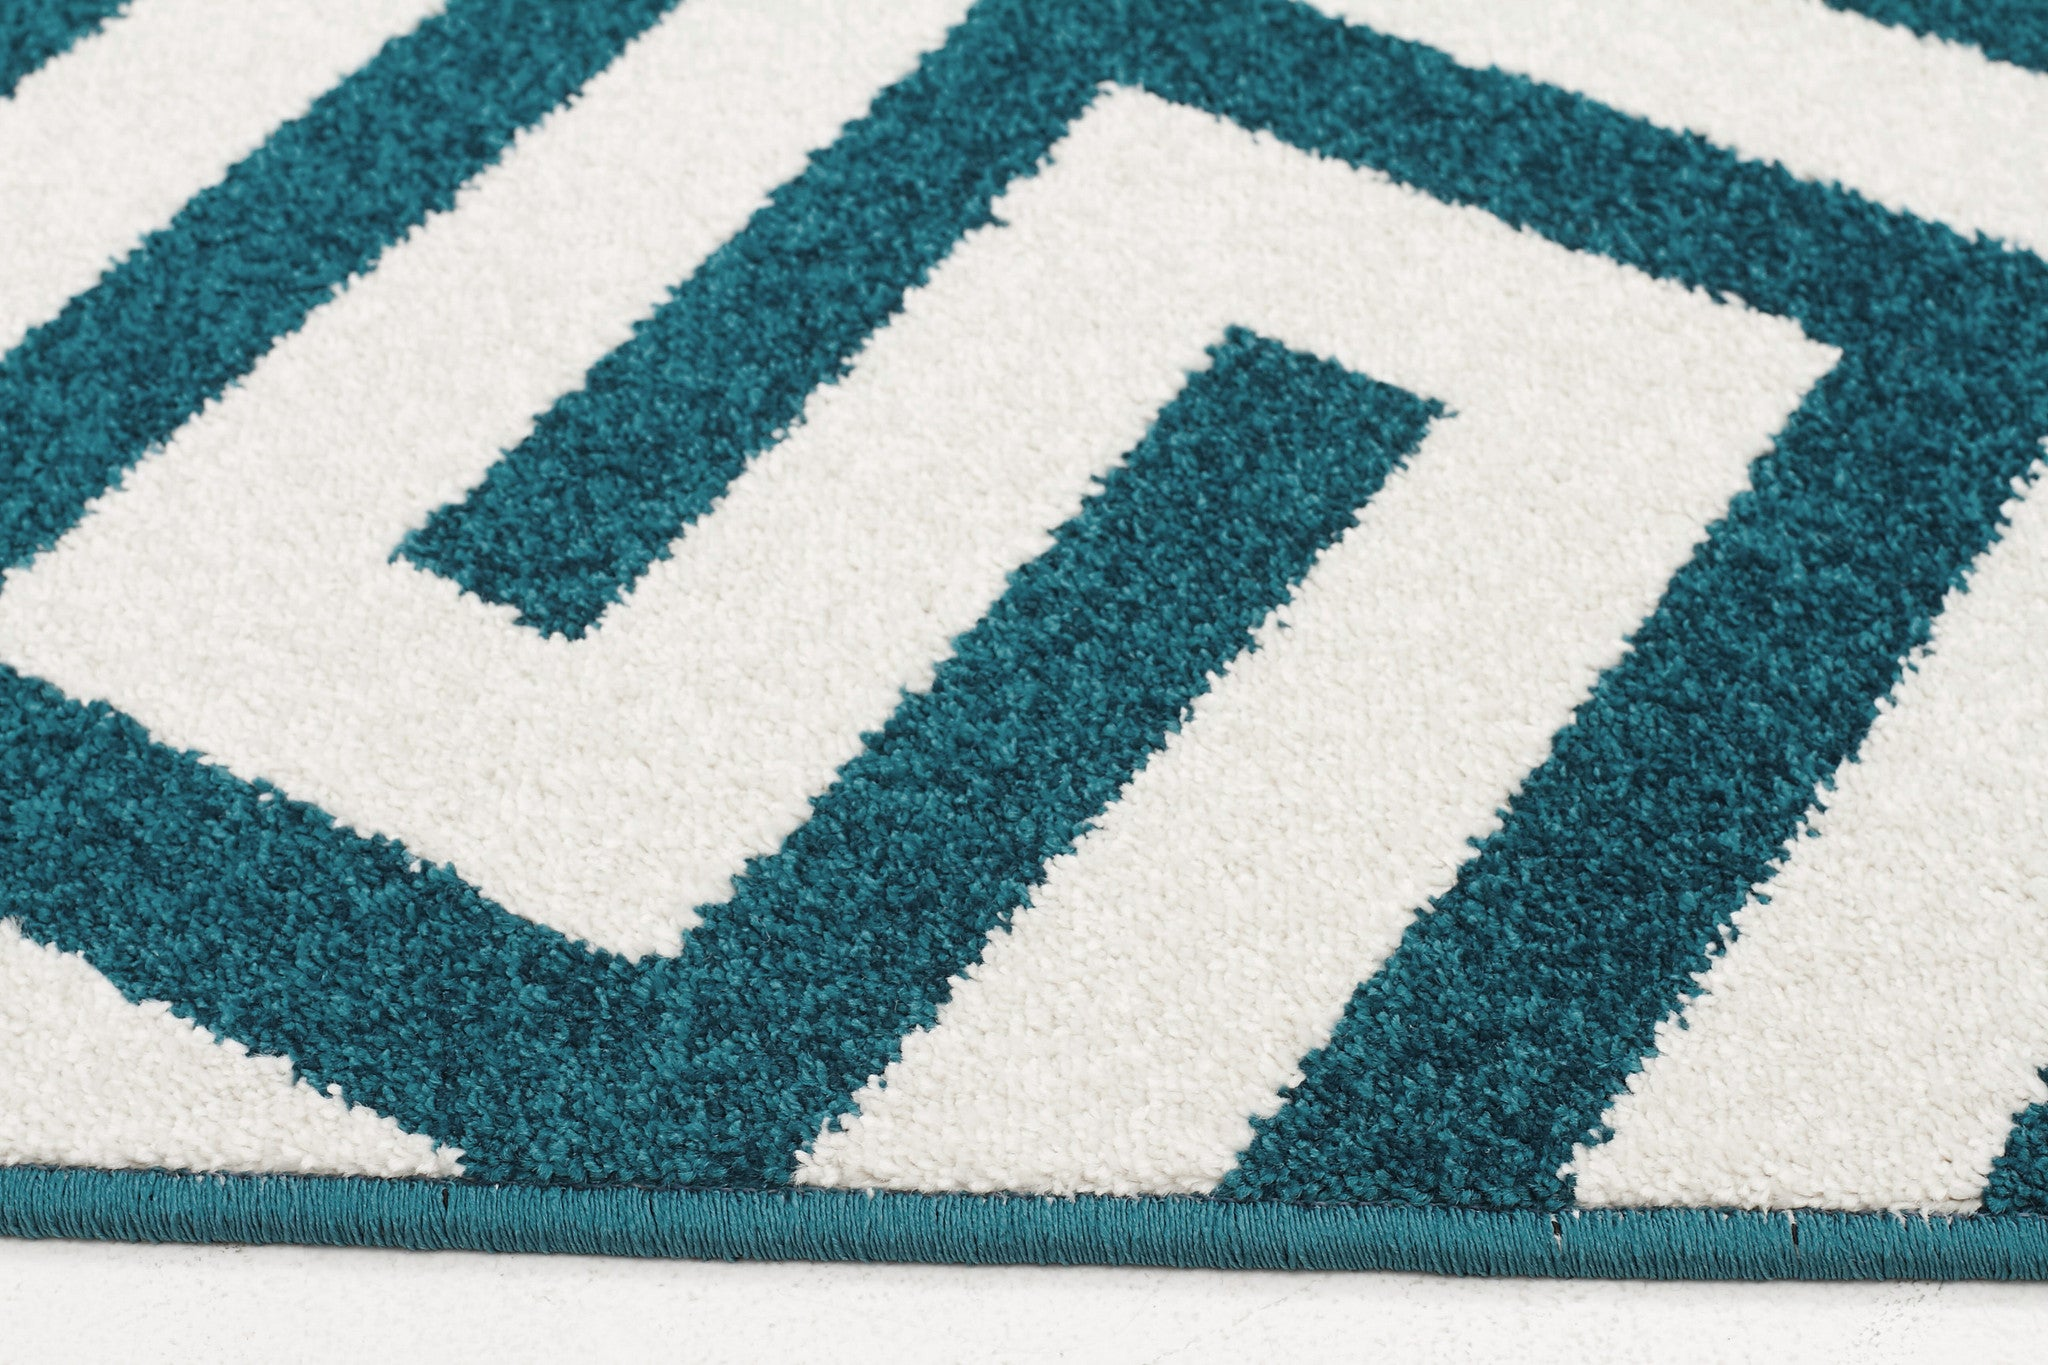 Marquee 304 Rug - Peacock Blue